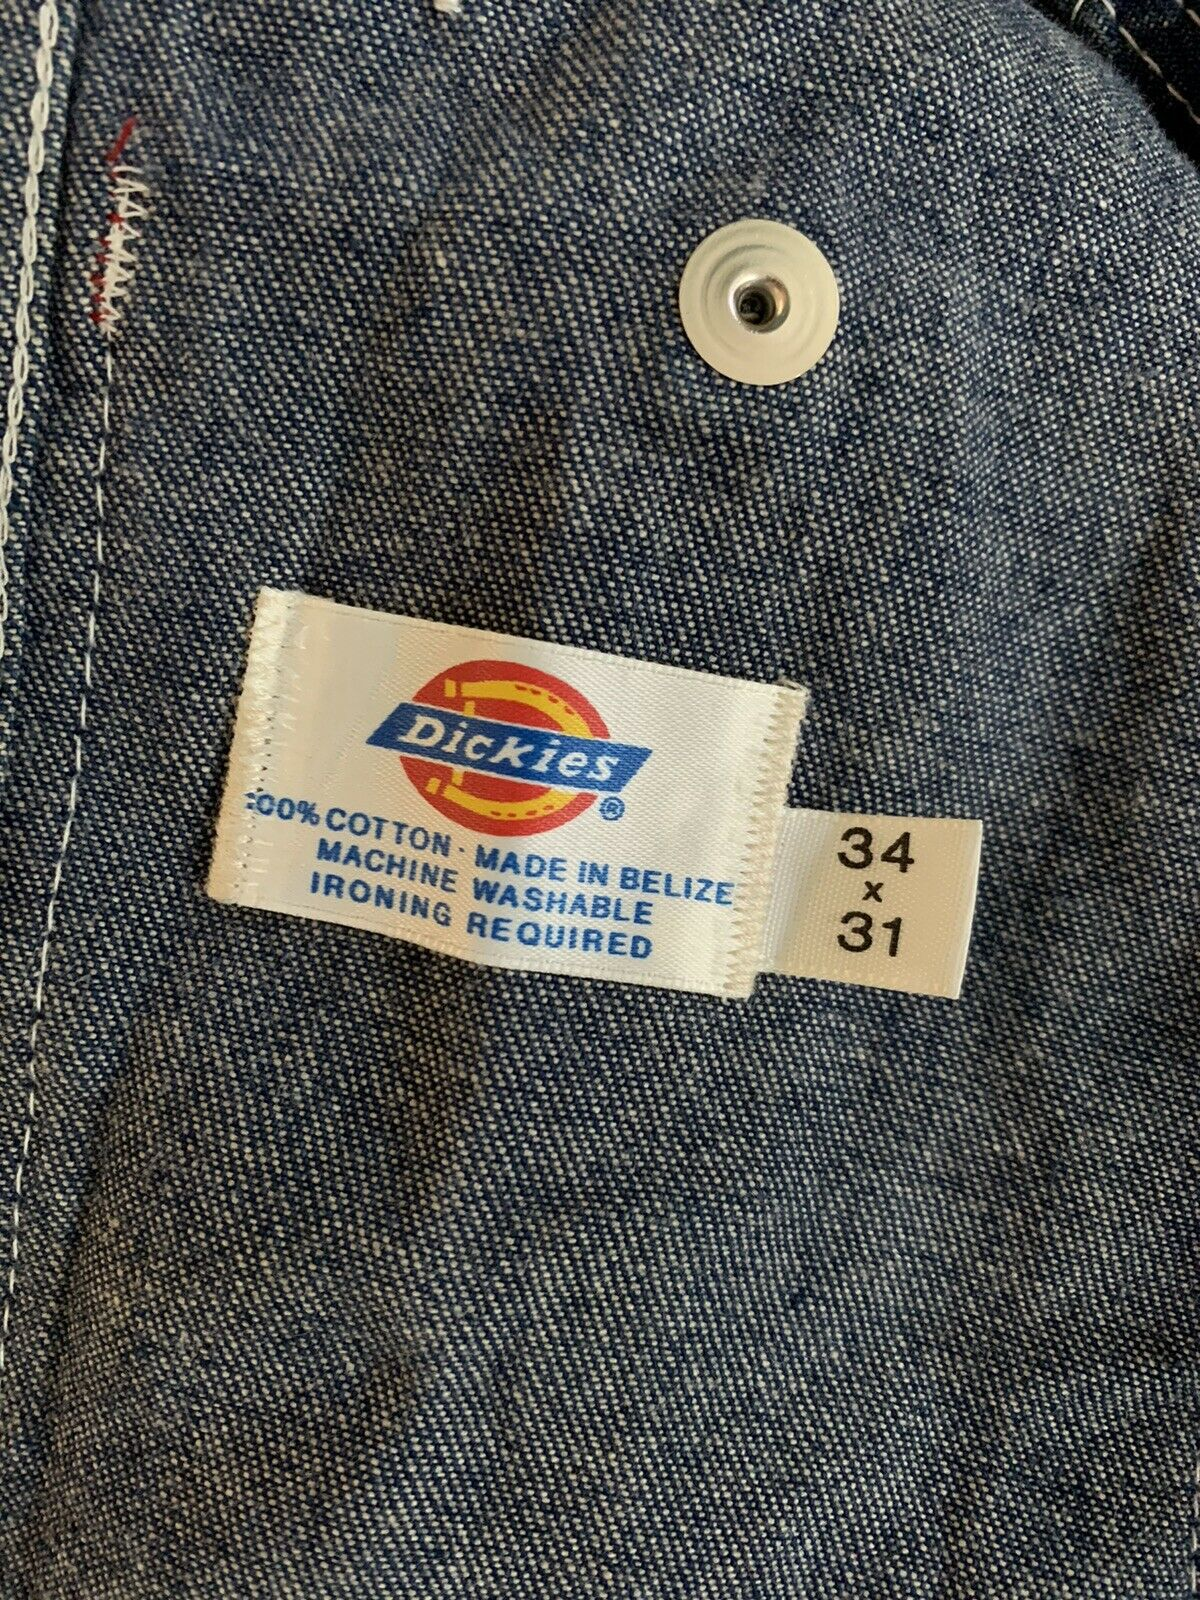 dickies jeans overalls size 34x31 - image 2